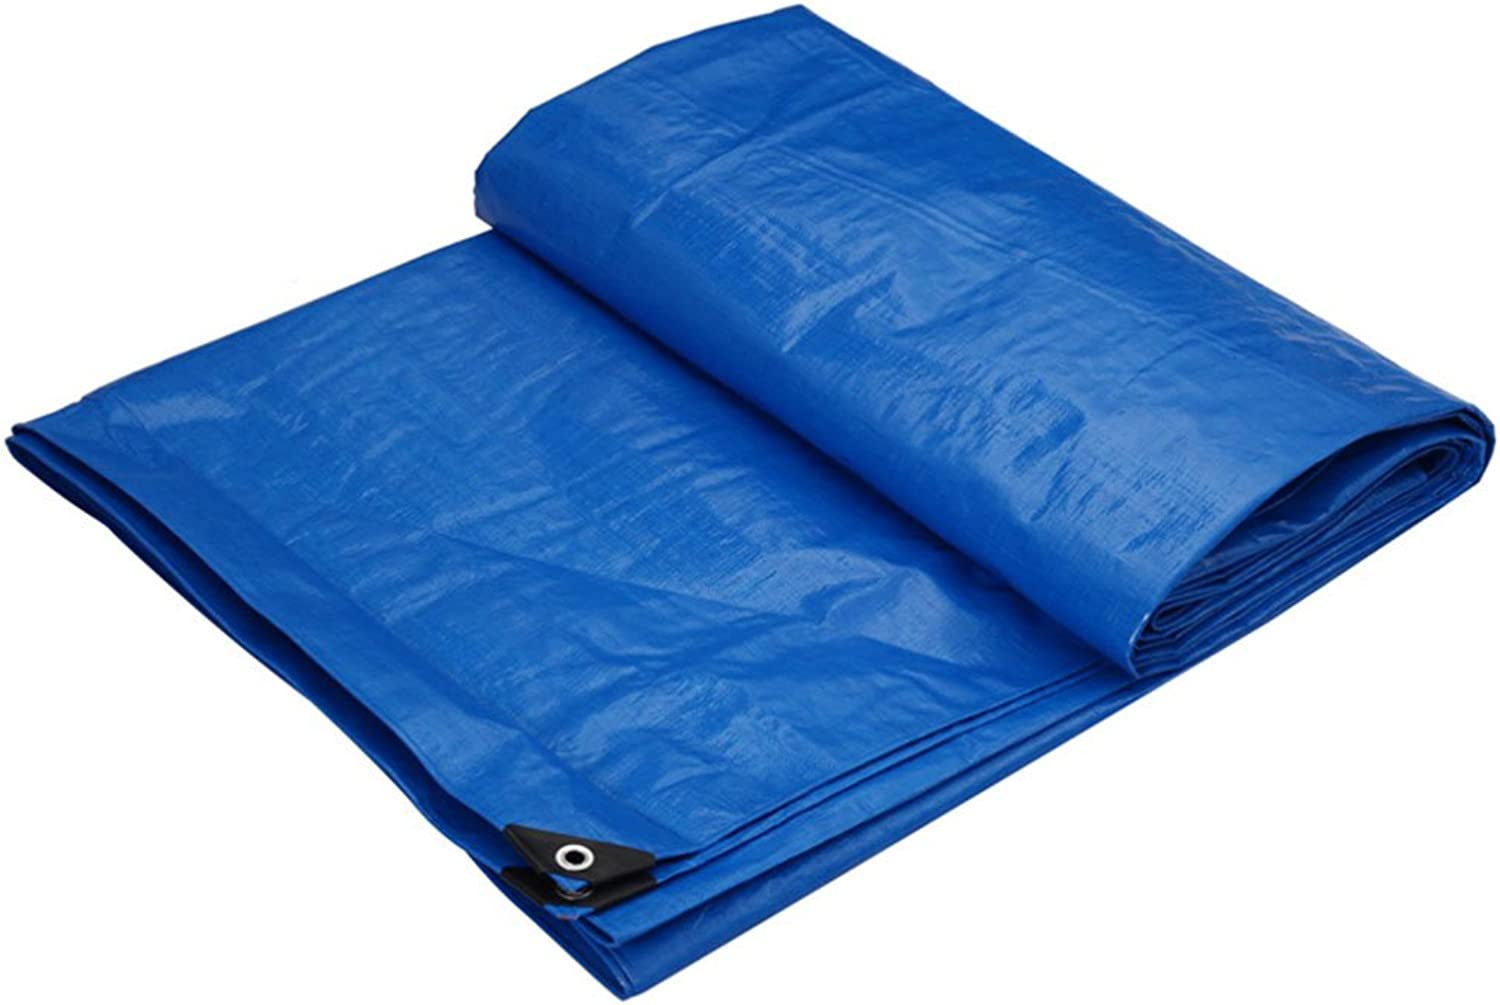 CHAOXIANG Tarpaulin Tent Thicken Foldable DoubleSided Waterproof ColdResistant Shade WearResistant Lightweight AntiCorrosion PE blueee, 175g m2, Thickness 0.32mm, 10 Sizes